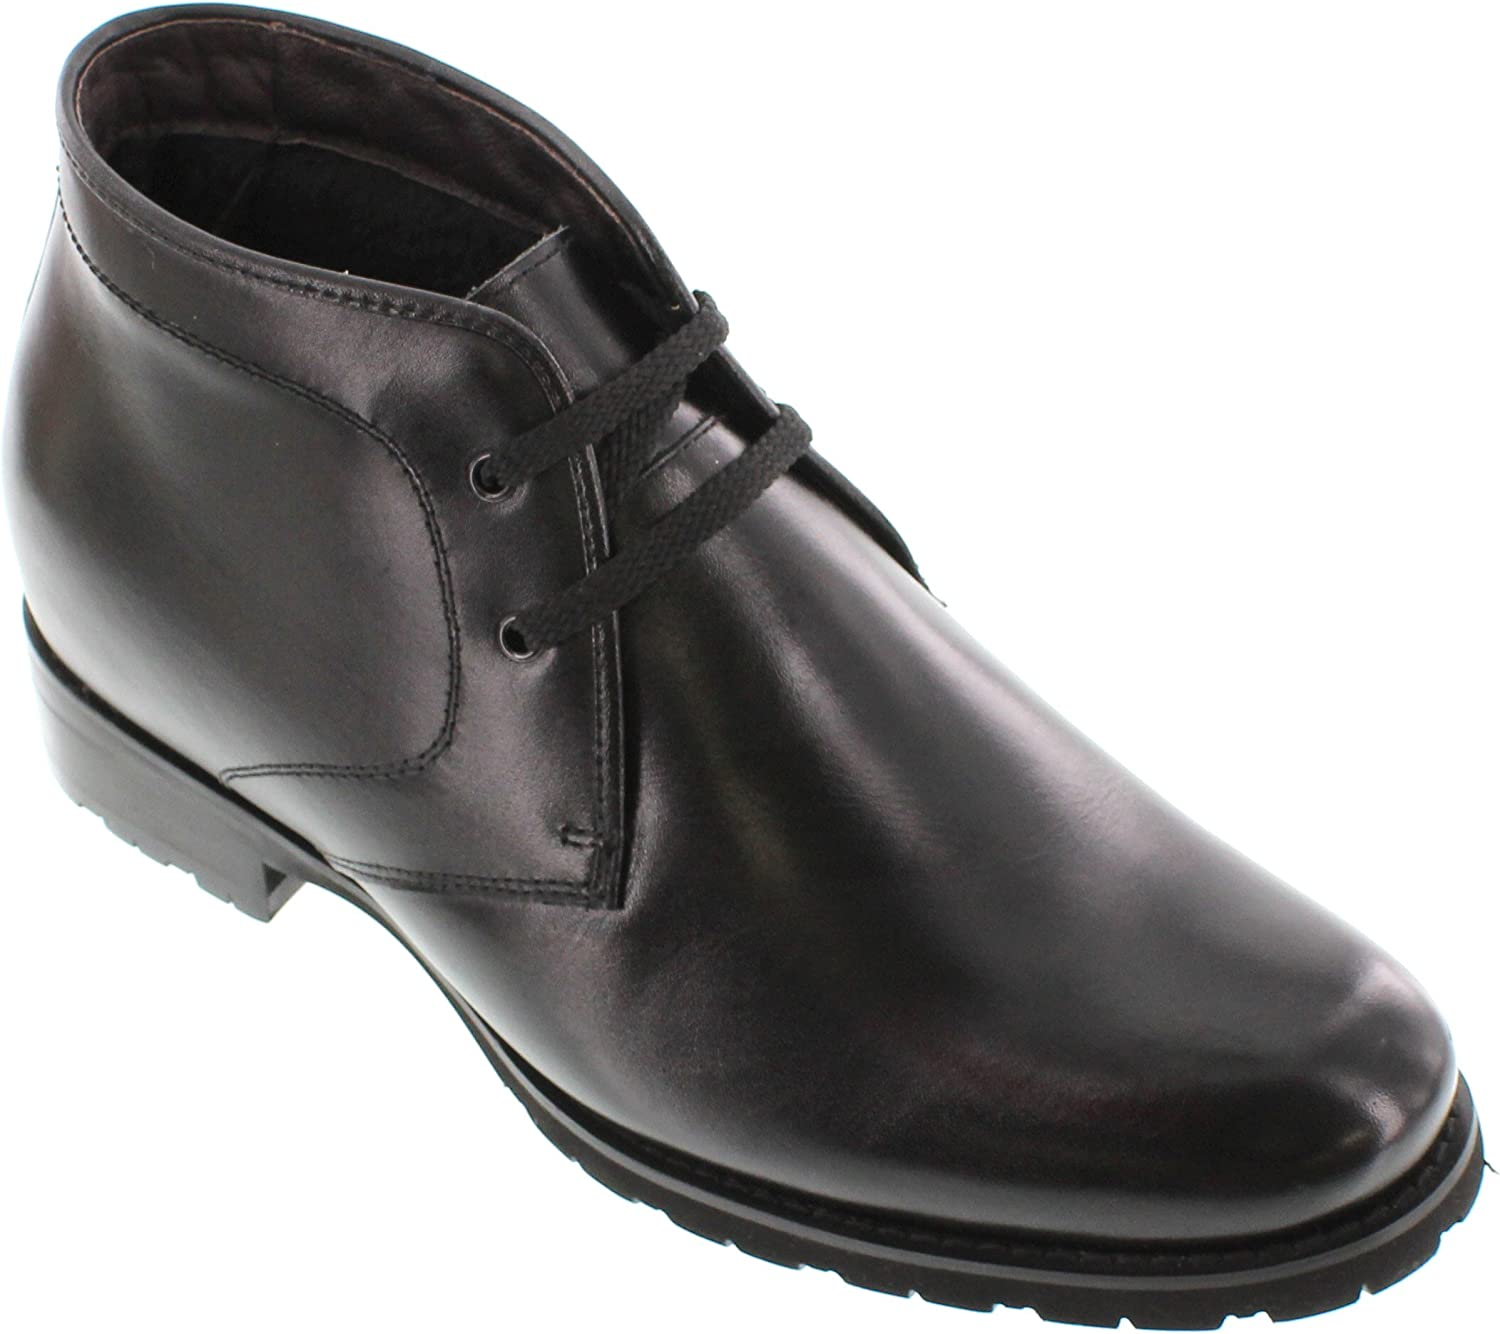 Toto Men's Invisible Height Increasing Elevator shoes - Black Premium Leather Lace-up Ankle Boots- 3 Inches Taller - X1812